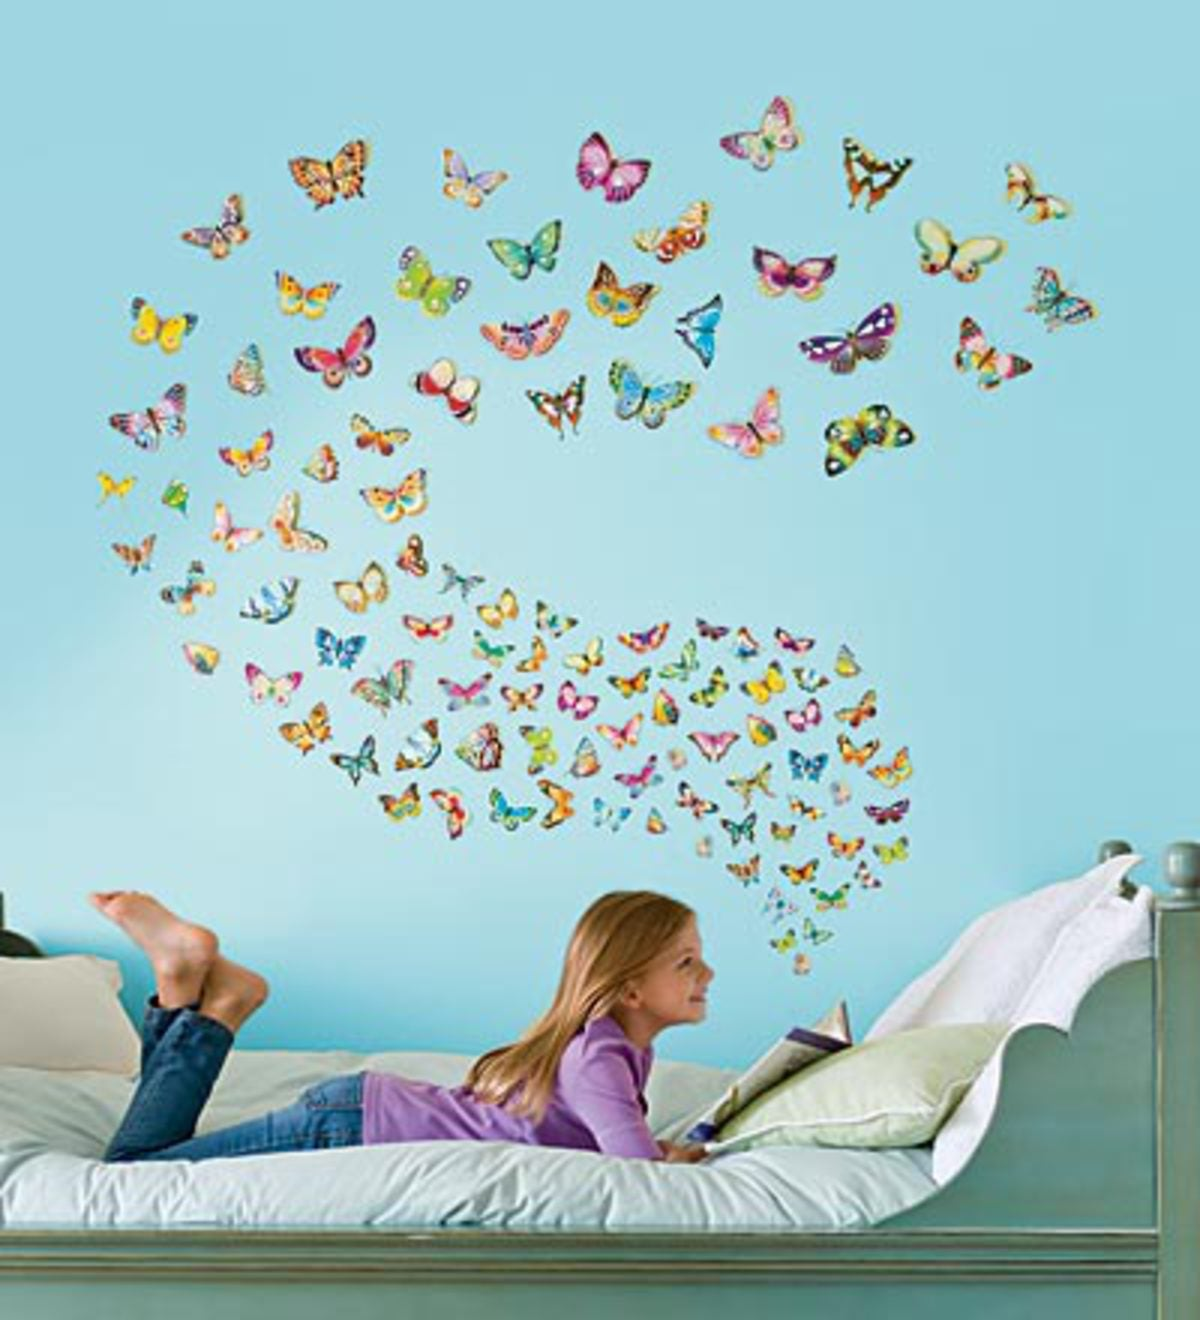 3d butterfly wall stckers wall decors wall art wall.htm flight of the butterflies wall stickers hearthsong  flight of the butterflies wall stickers